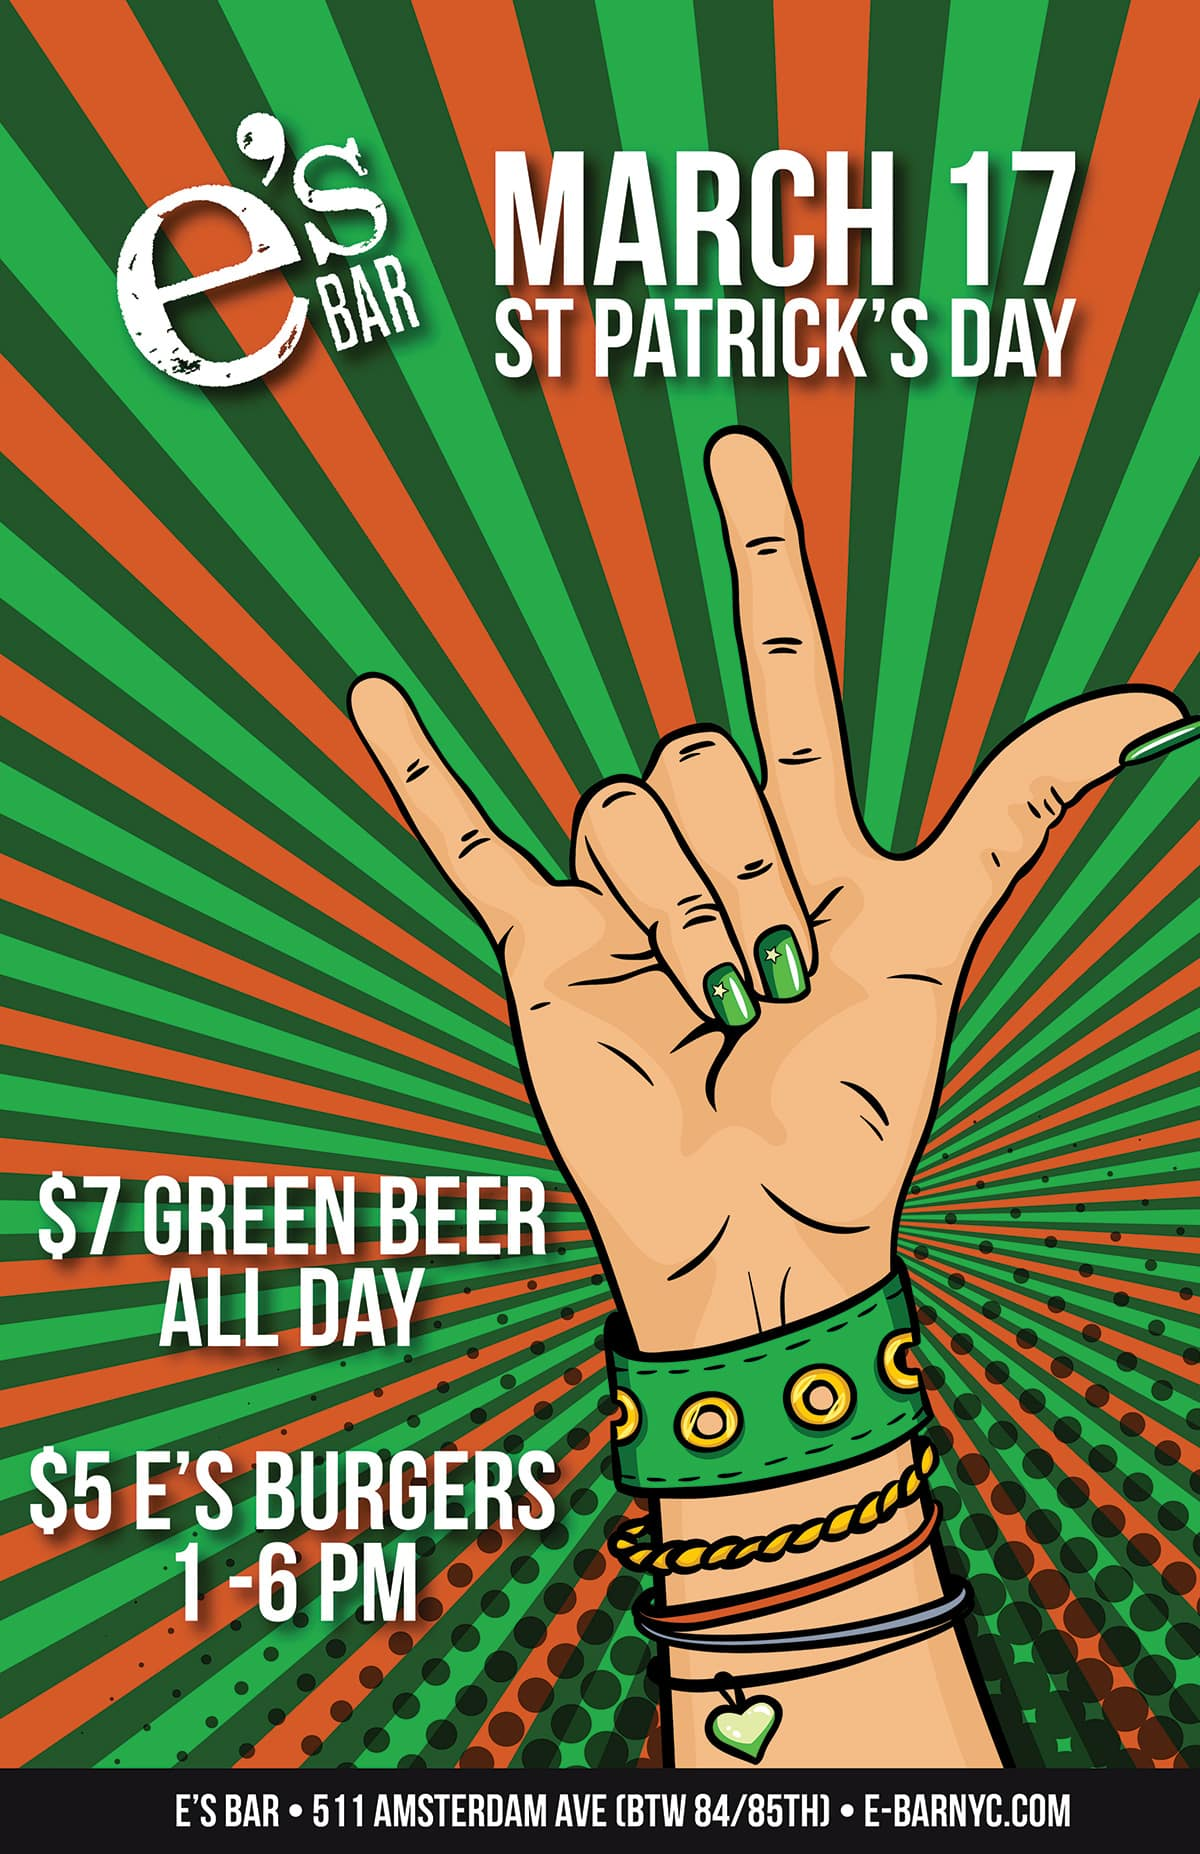 St Patrick's Day party poster